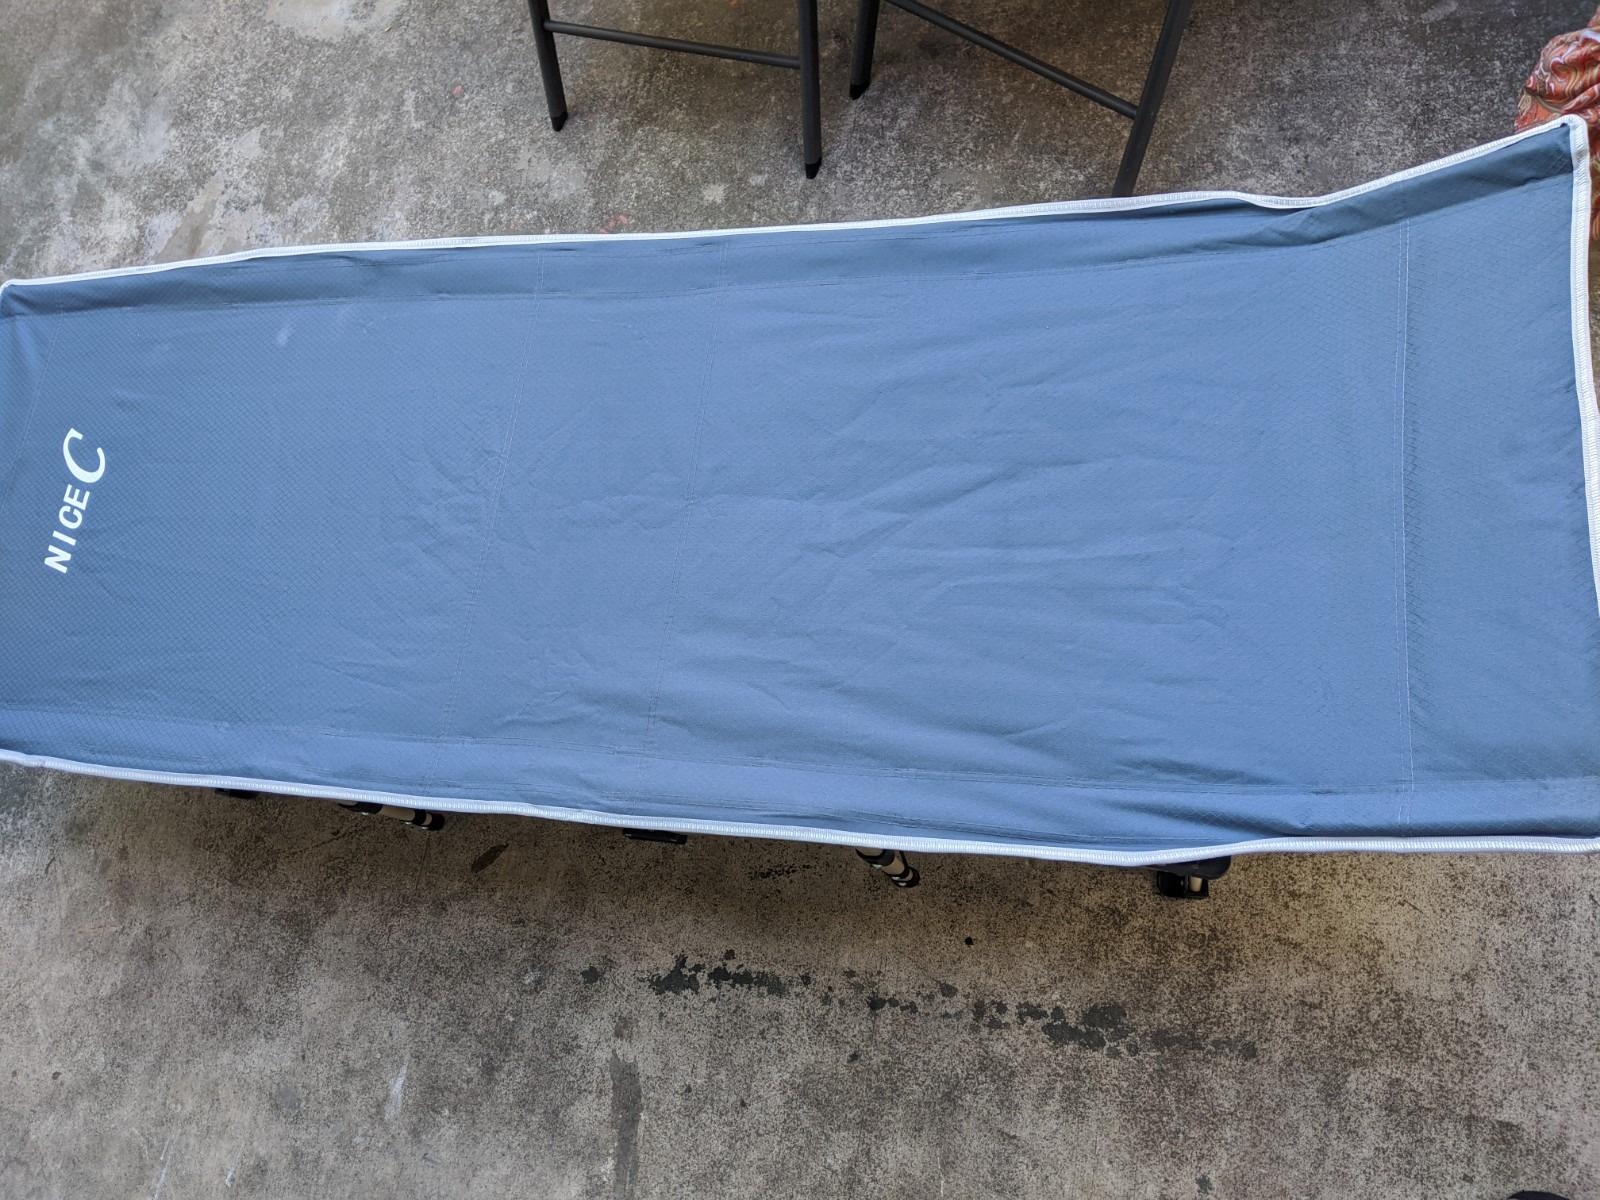 Nice C Folding Camping Cot, Sleeping Bed, Tent Cot, with Pillow, Carry Bag & Storage Bag photo review